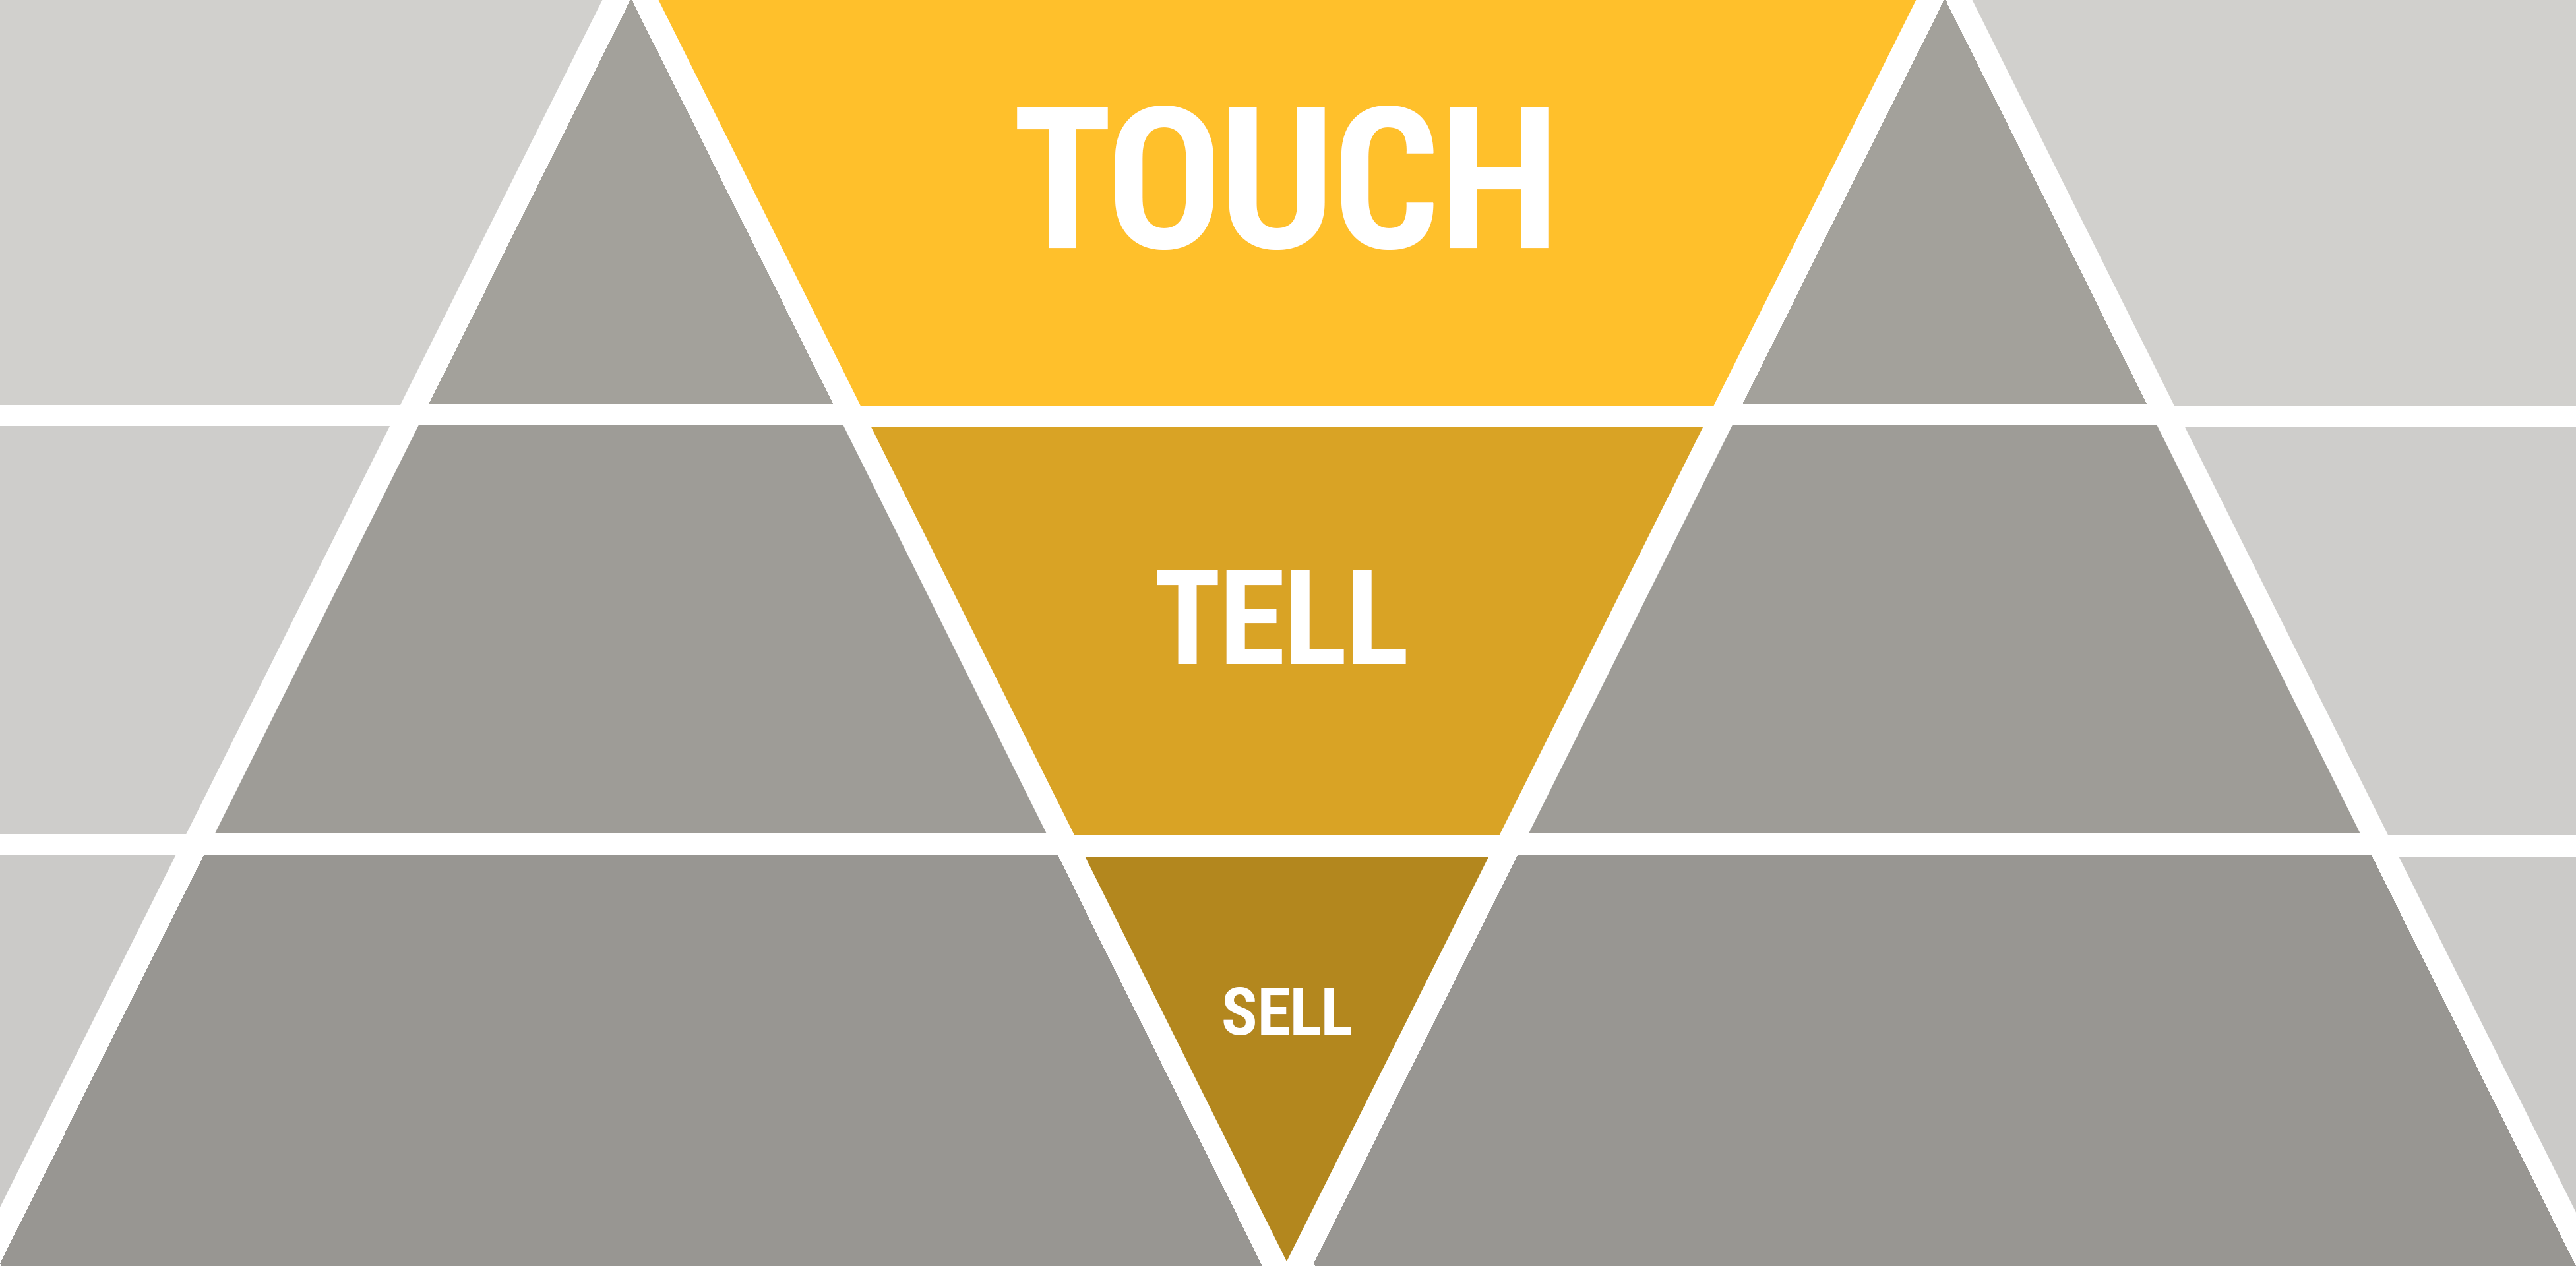 Touch-Tell-Sell Videomarketing Strategie